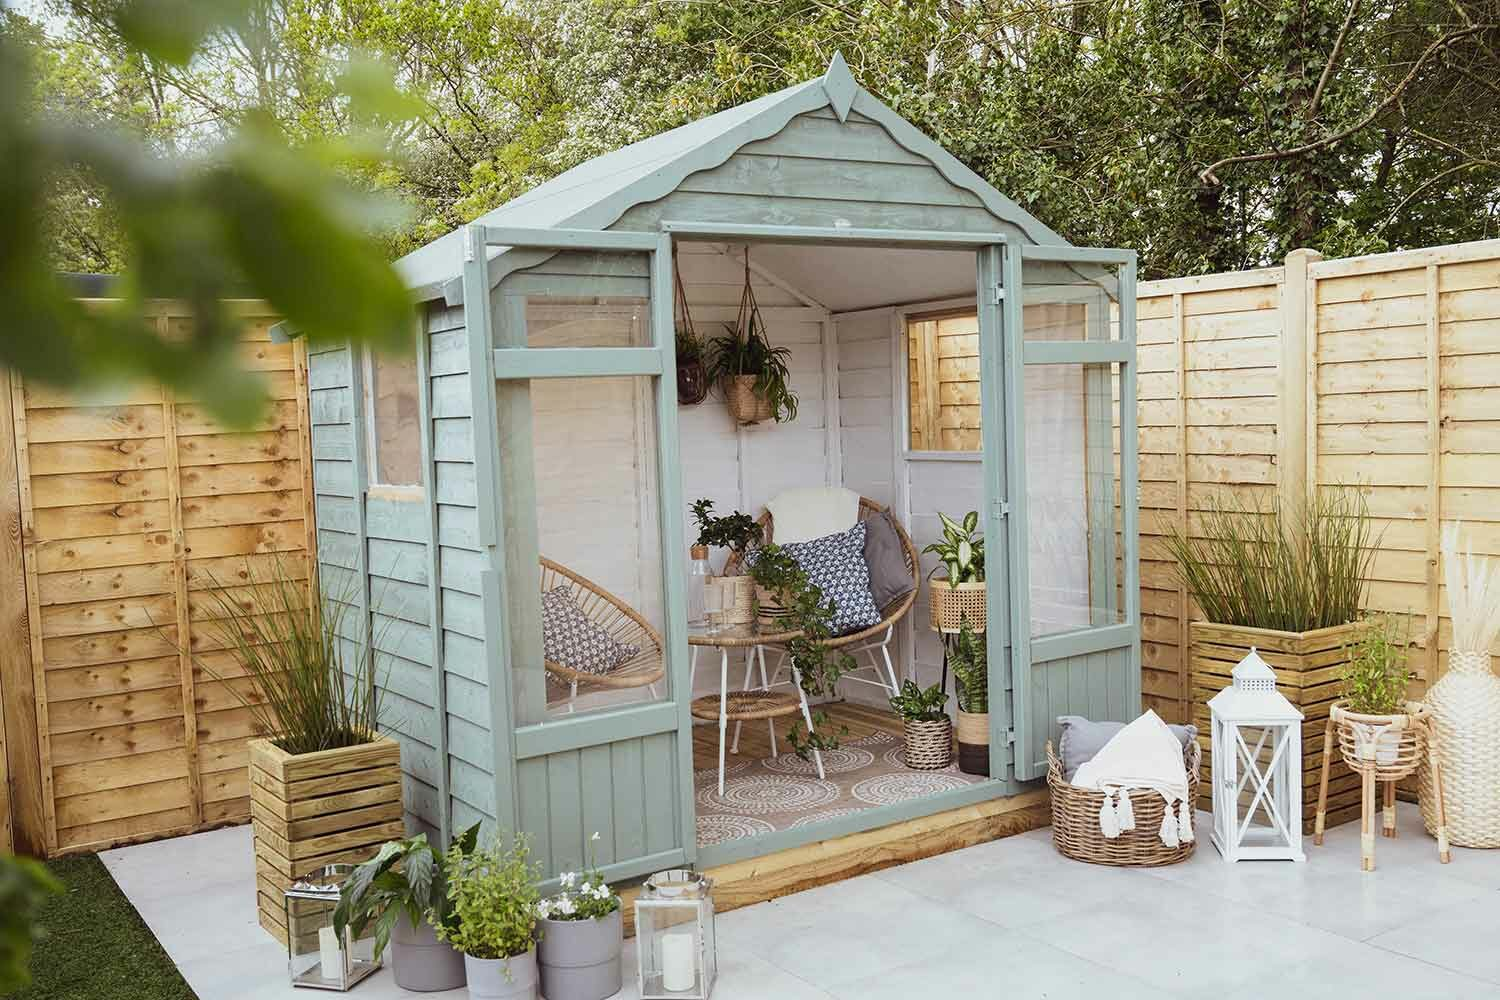 Thorndown-Bullrush-Green-and-RAL-9003-Wood-Paint-on-Oakley-Summerhouse_2